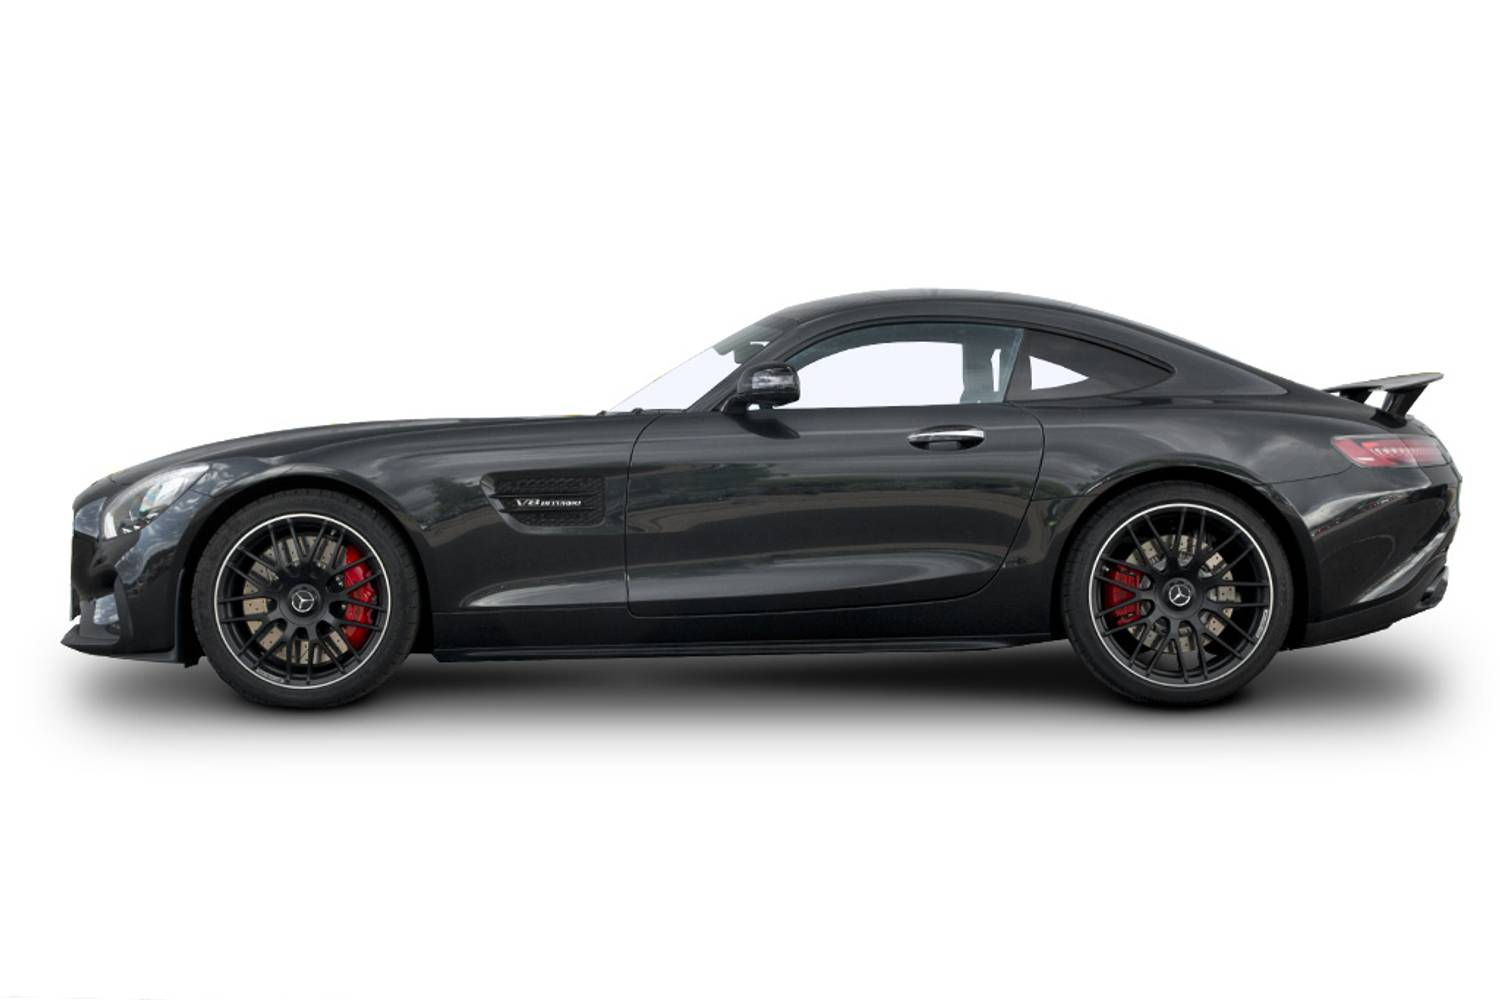 Attractive Mercedes Benz AMG GT Coupe GT Auto Profile